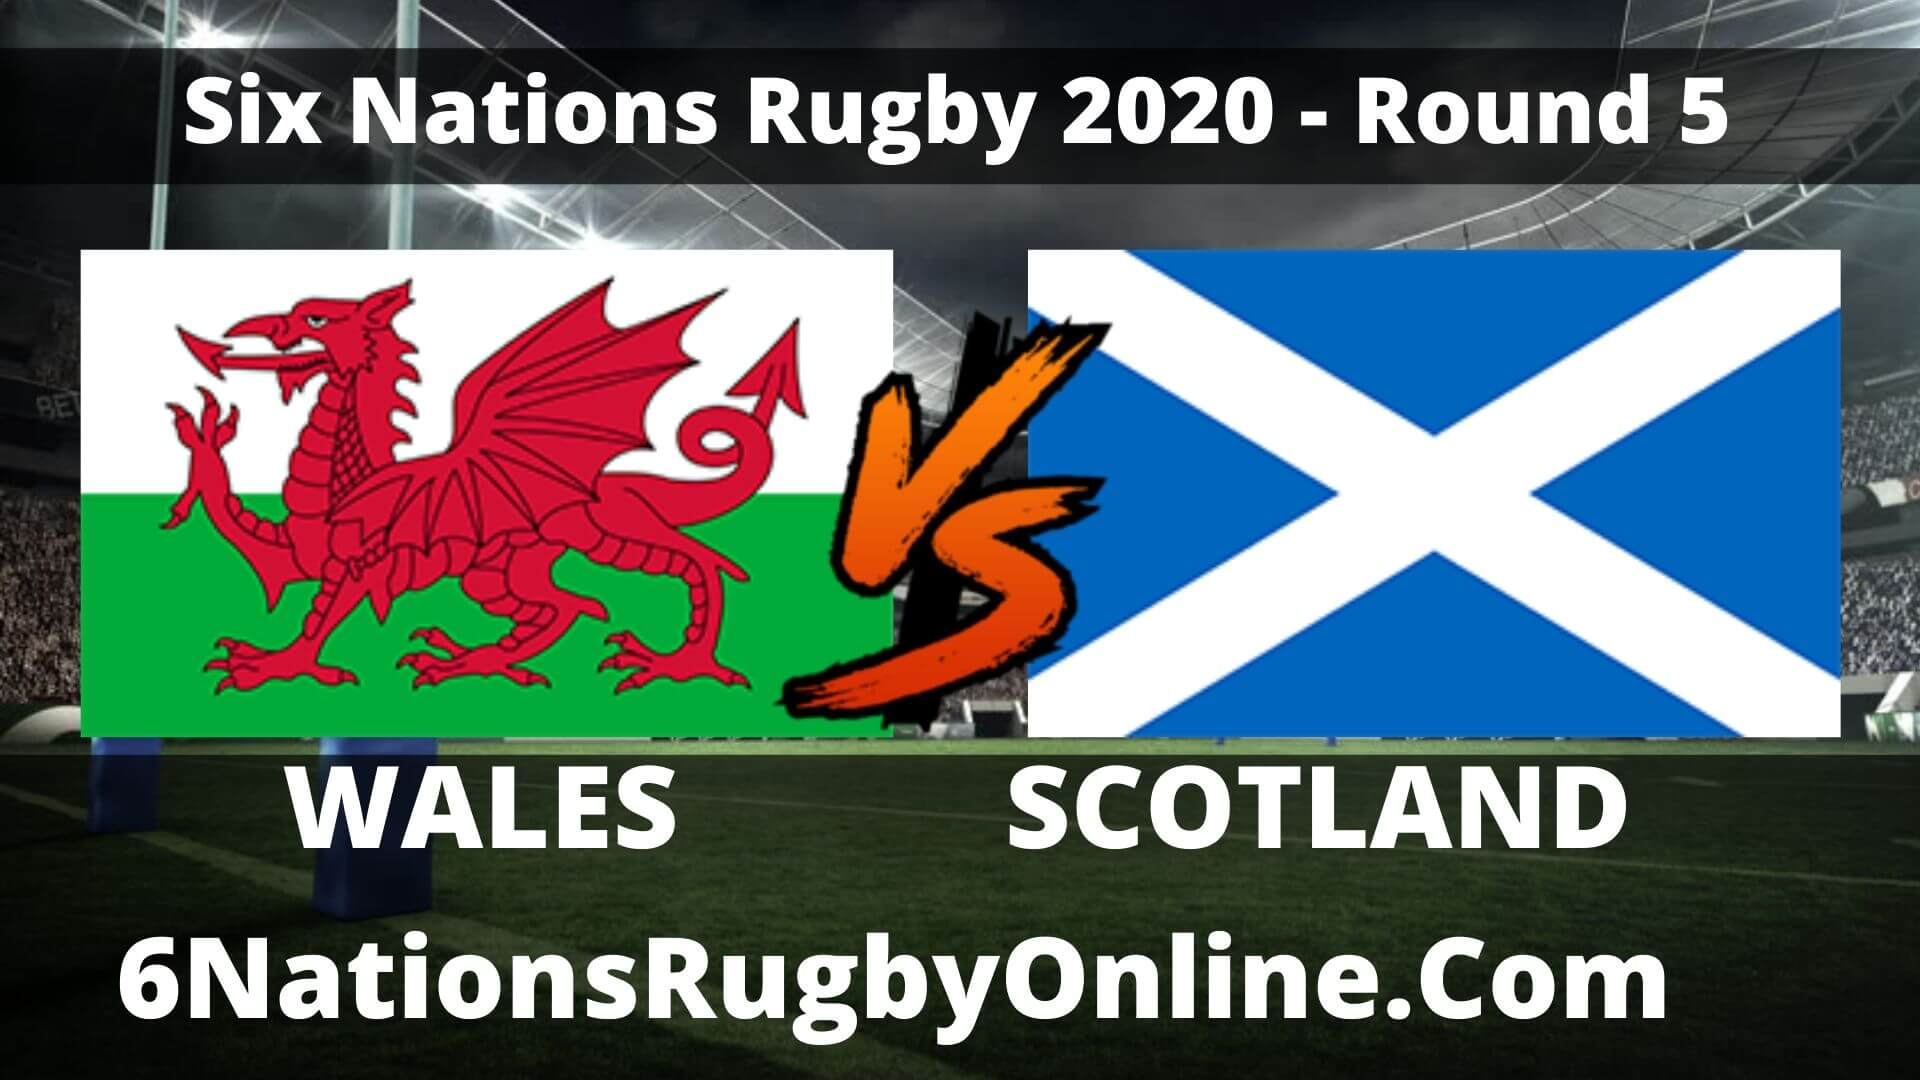 Wales vs Scotland Live Stream 2020 Round 5 | Match Replay